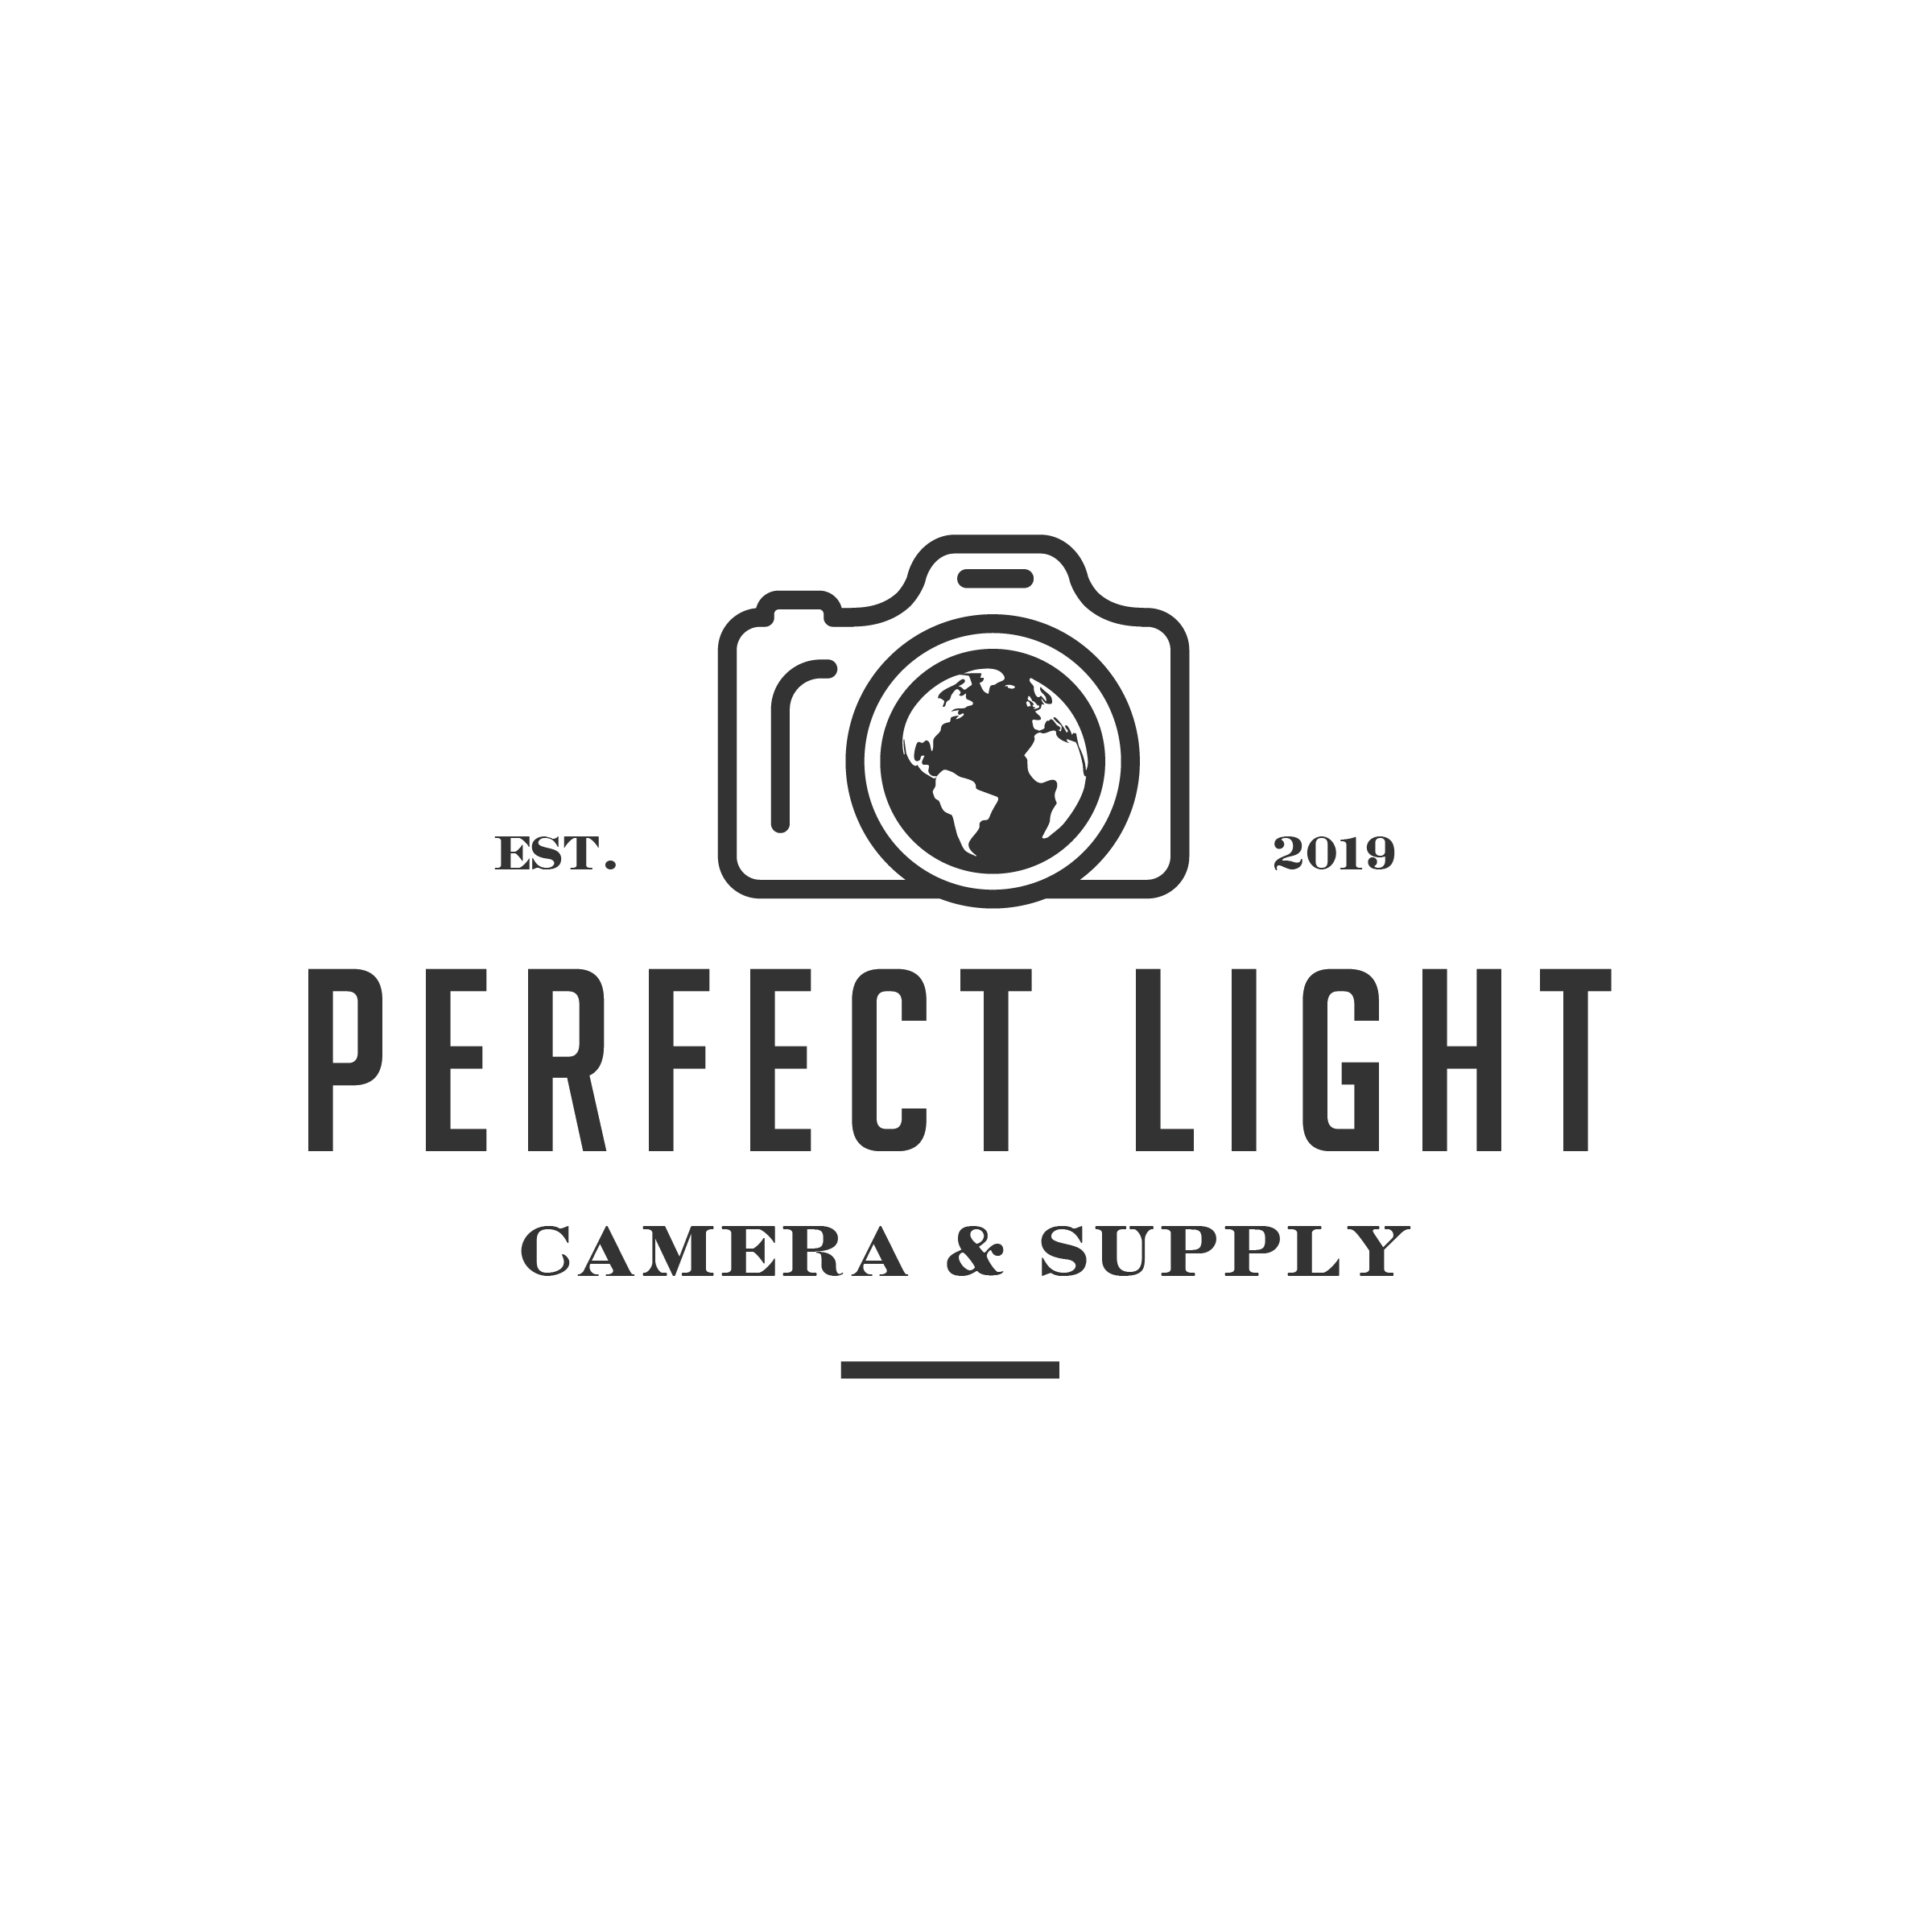 Fun - Photography and Adventure Travel Company looking for Logo to represent multiple companies